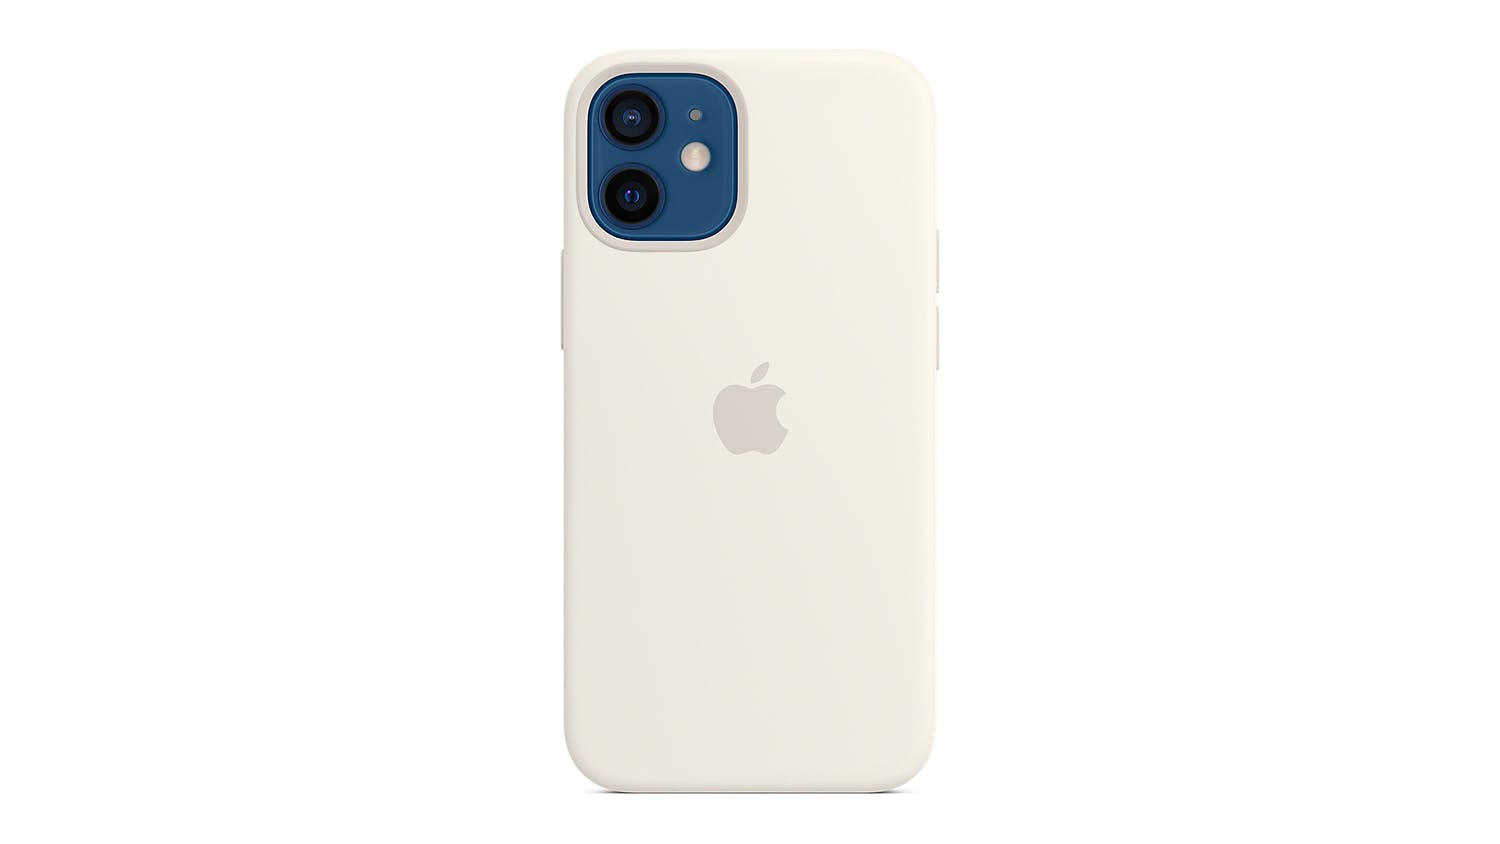 Apple Silicone Case with MagSafe for iPhone 12 mini - White